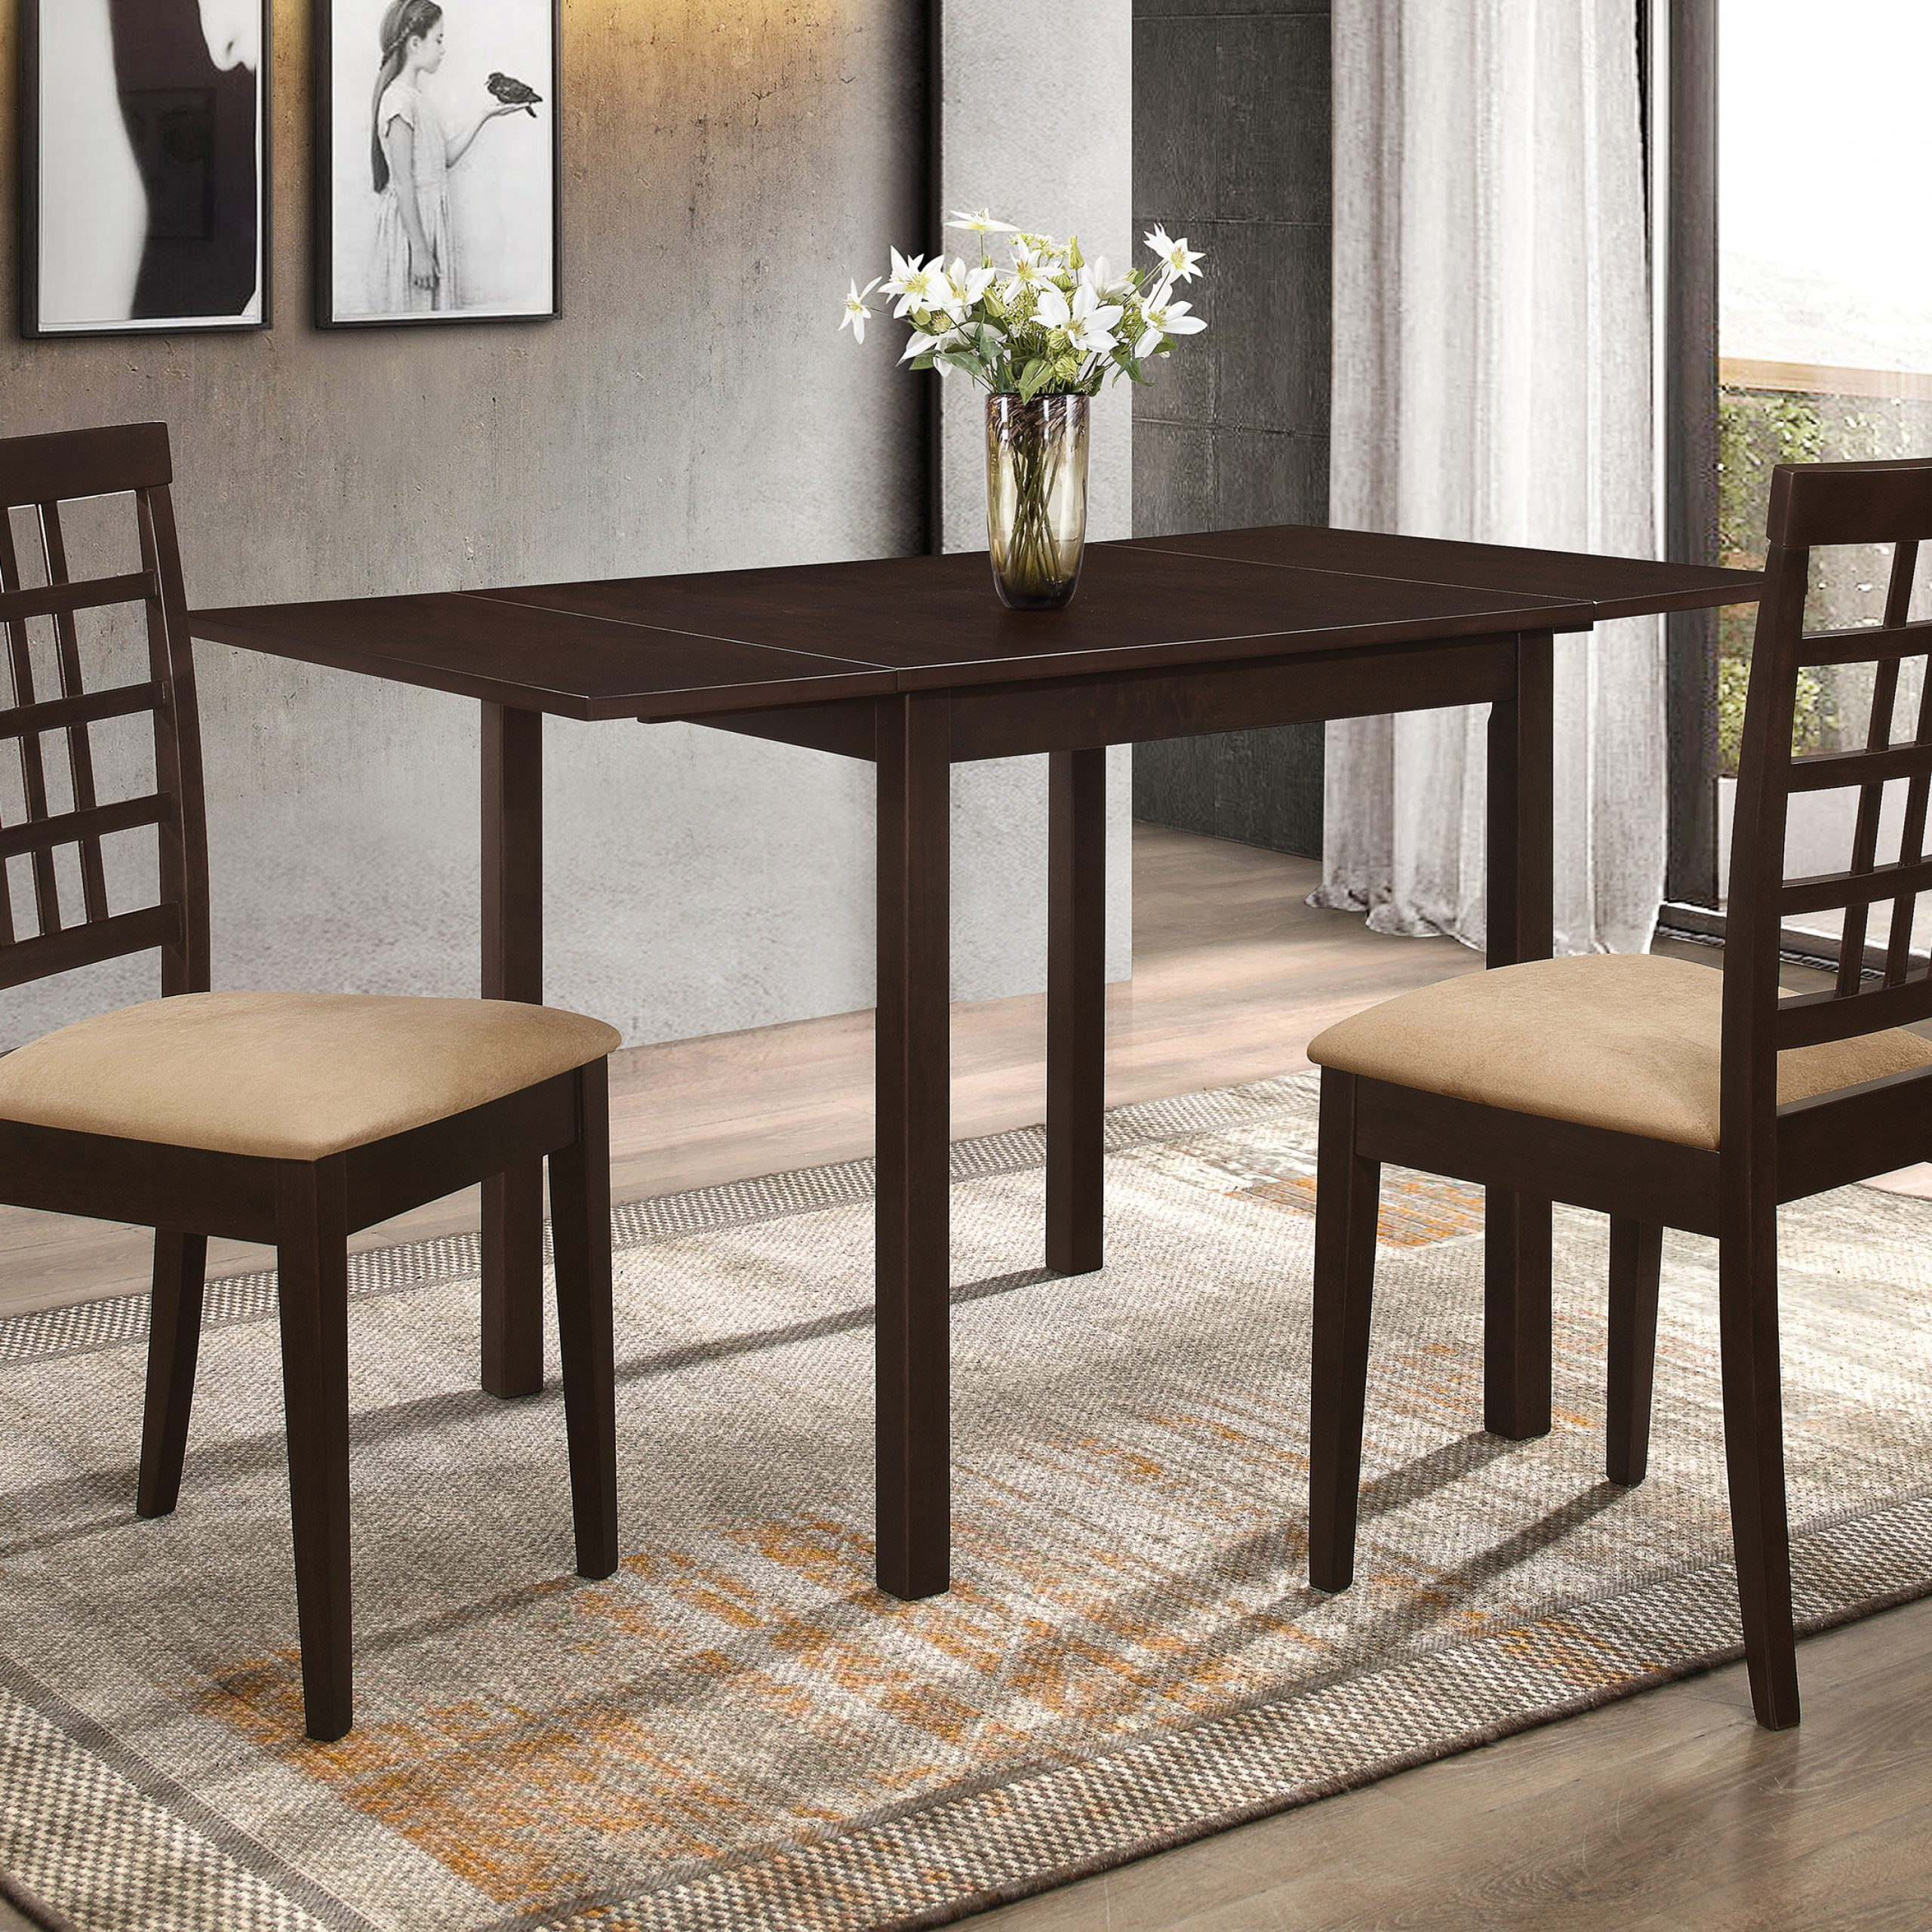 2020 Kelso Rectangular Dining Table With Drop Leaf Cappuccino with regard to Transitional Drop Leaf Casual Dining Tables